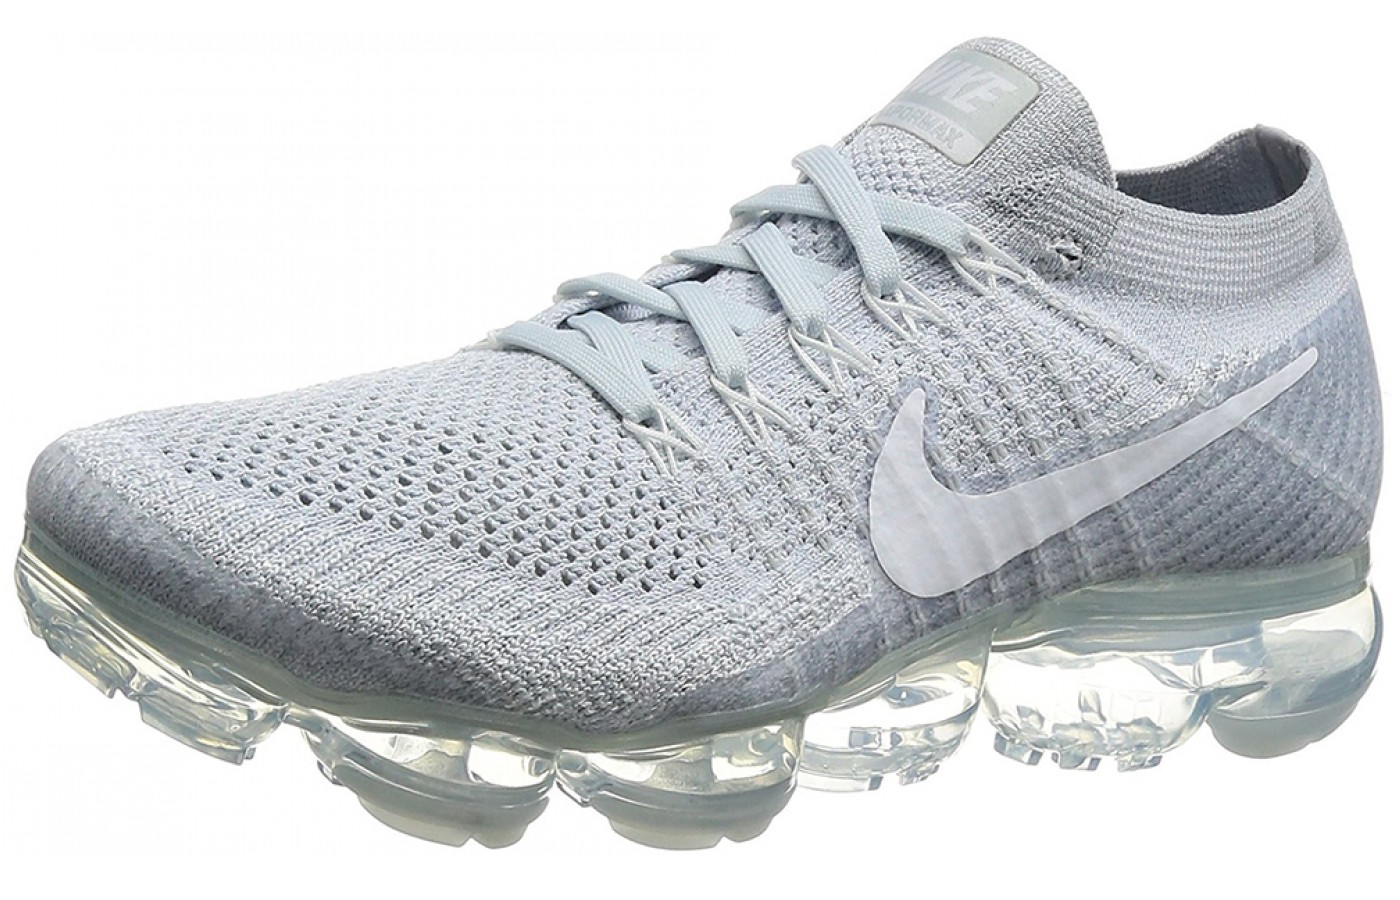 5496bcdb49548 Three quarter view of the Nike Air Vapormax running shoe ...